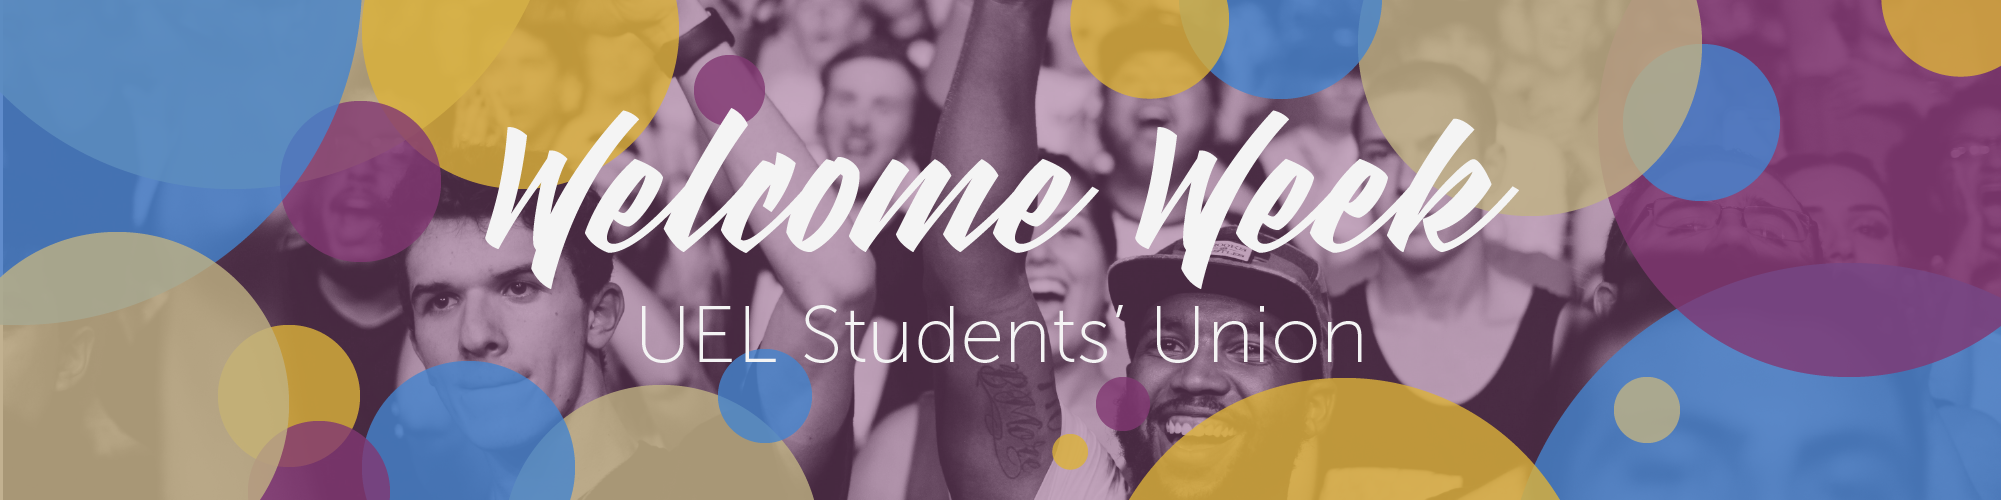 Welcome Week - UEL Students' Union